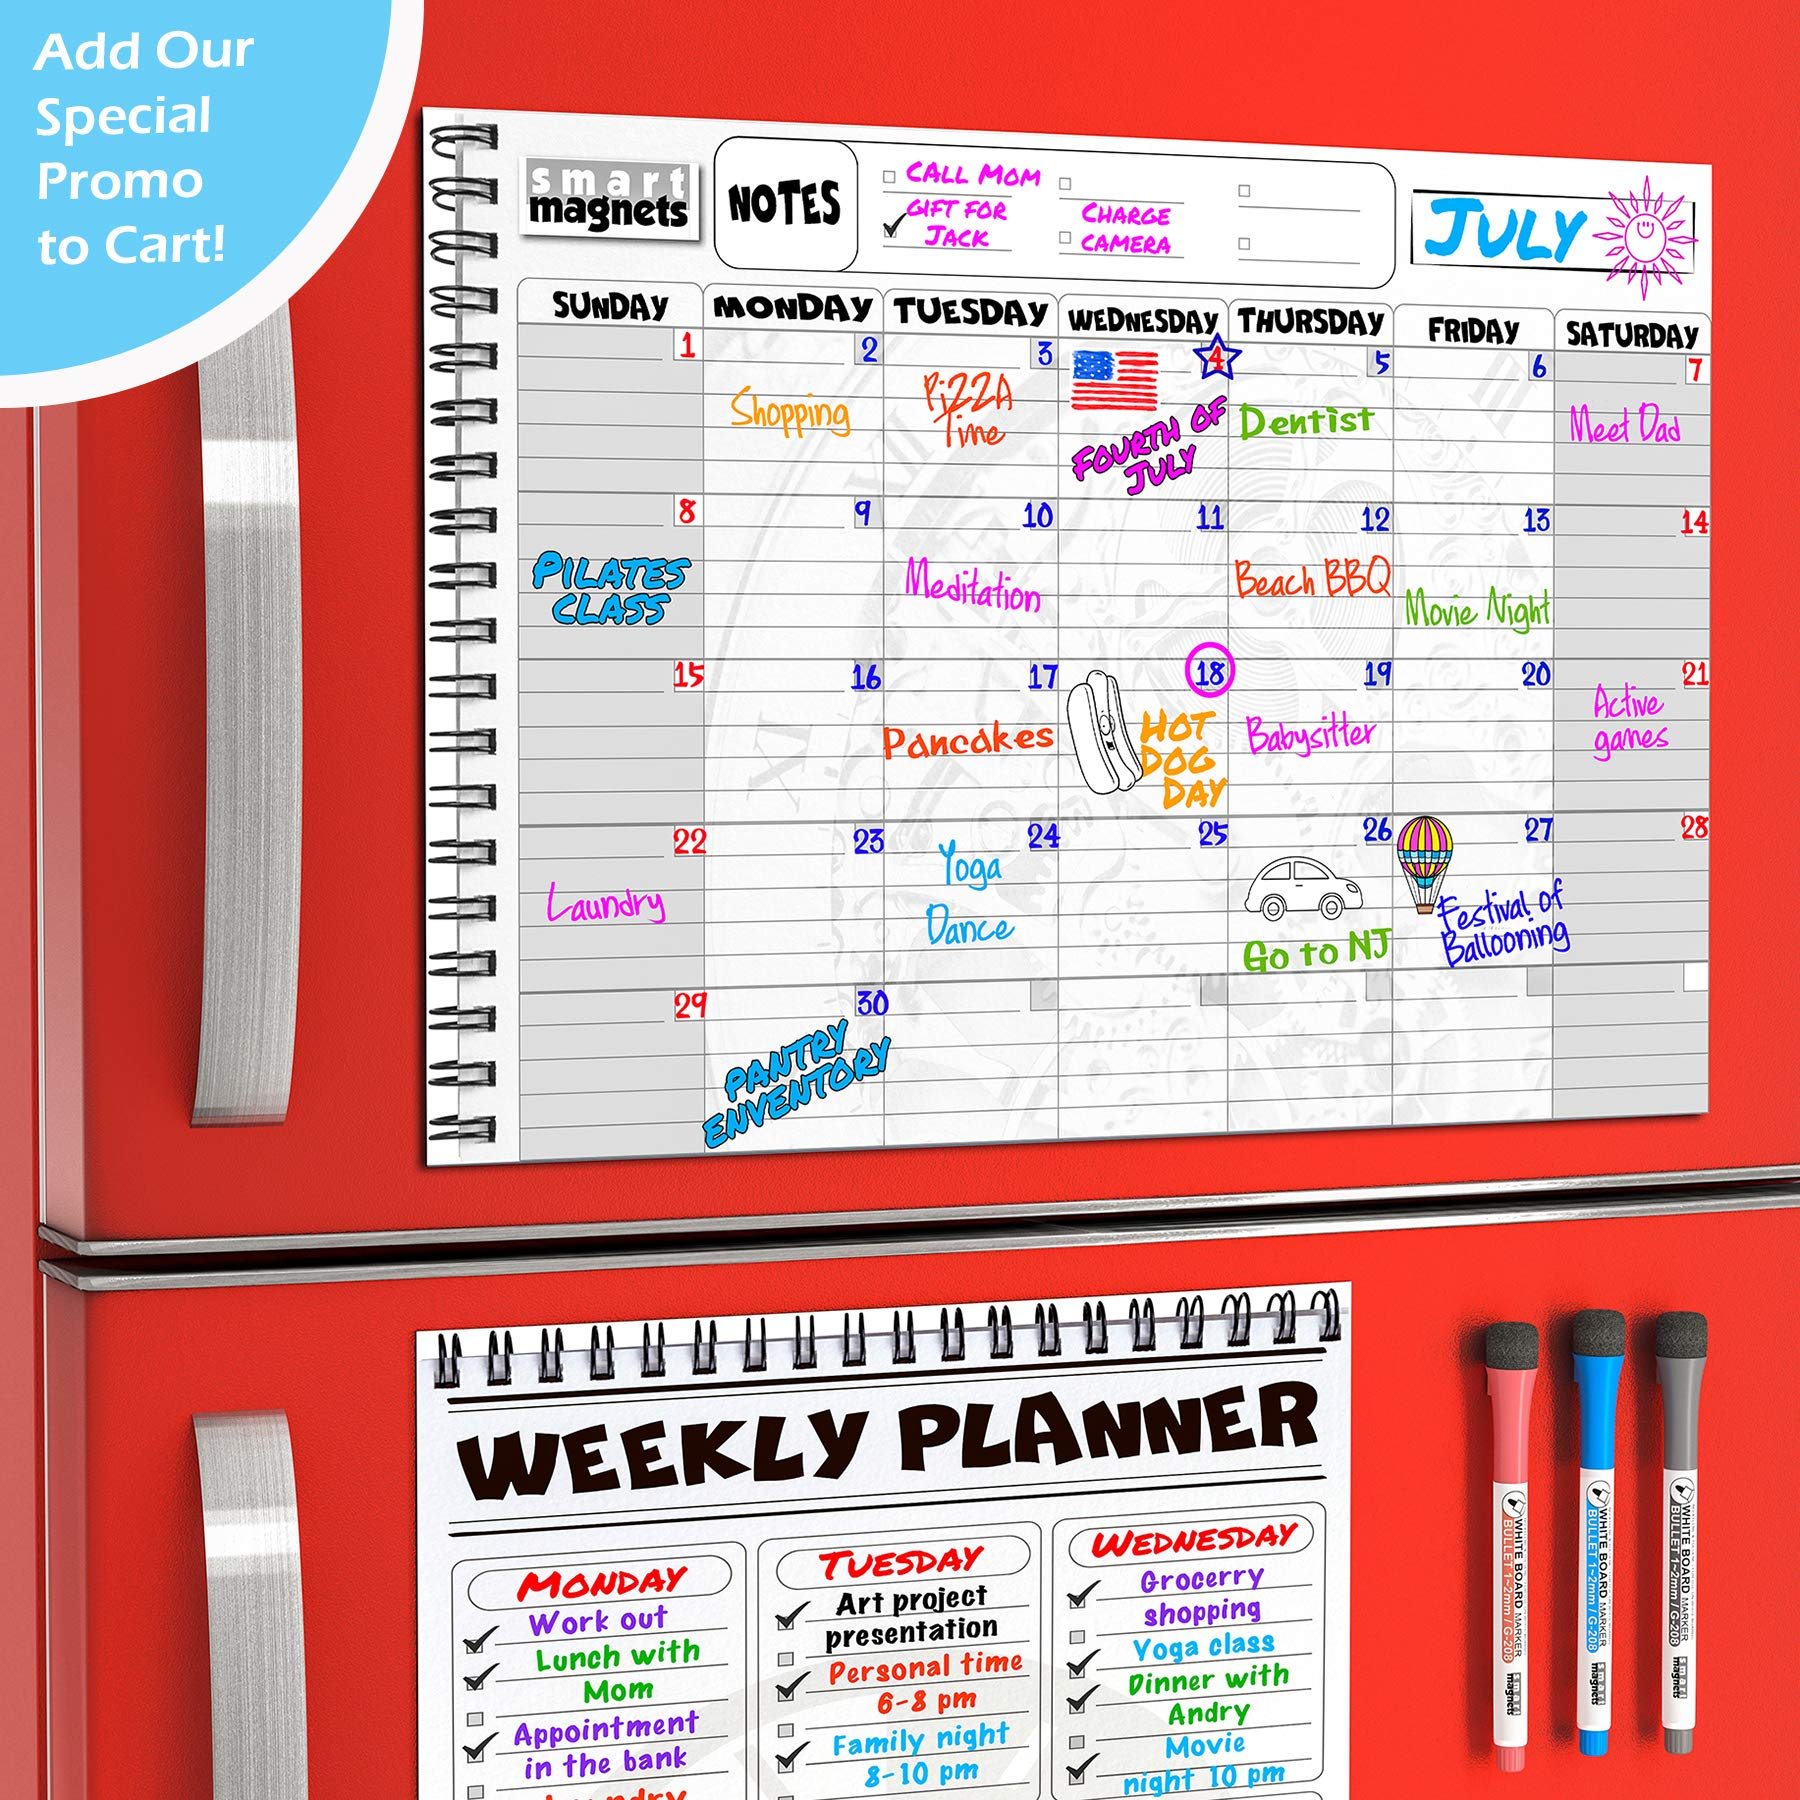 Magnetic Monthly Planner Board SET for Kitchen Fridge - Large Dry Erase Calendar Monthly Organizer with To Do List Notepad and Dry Erase Weekly Planner Whiteboard with Reusable Grocery List Magnet Pad